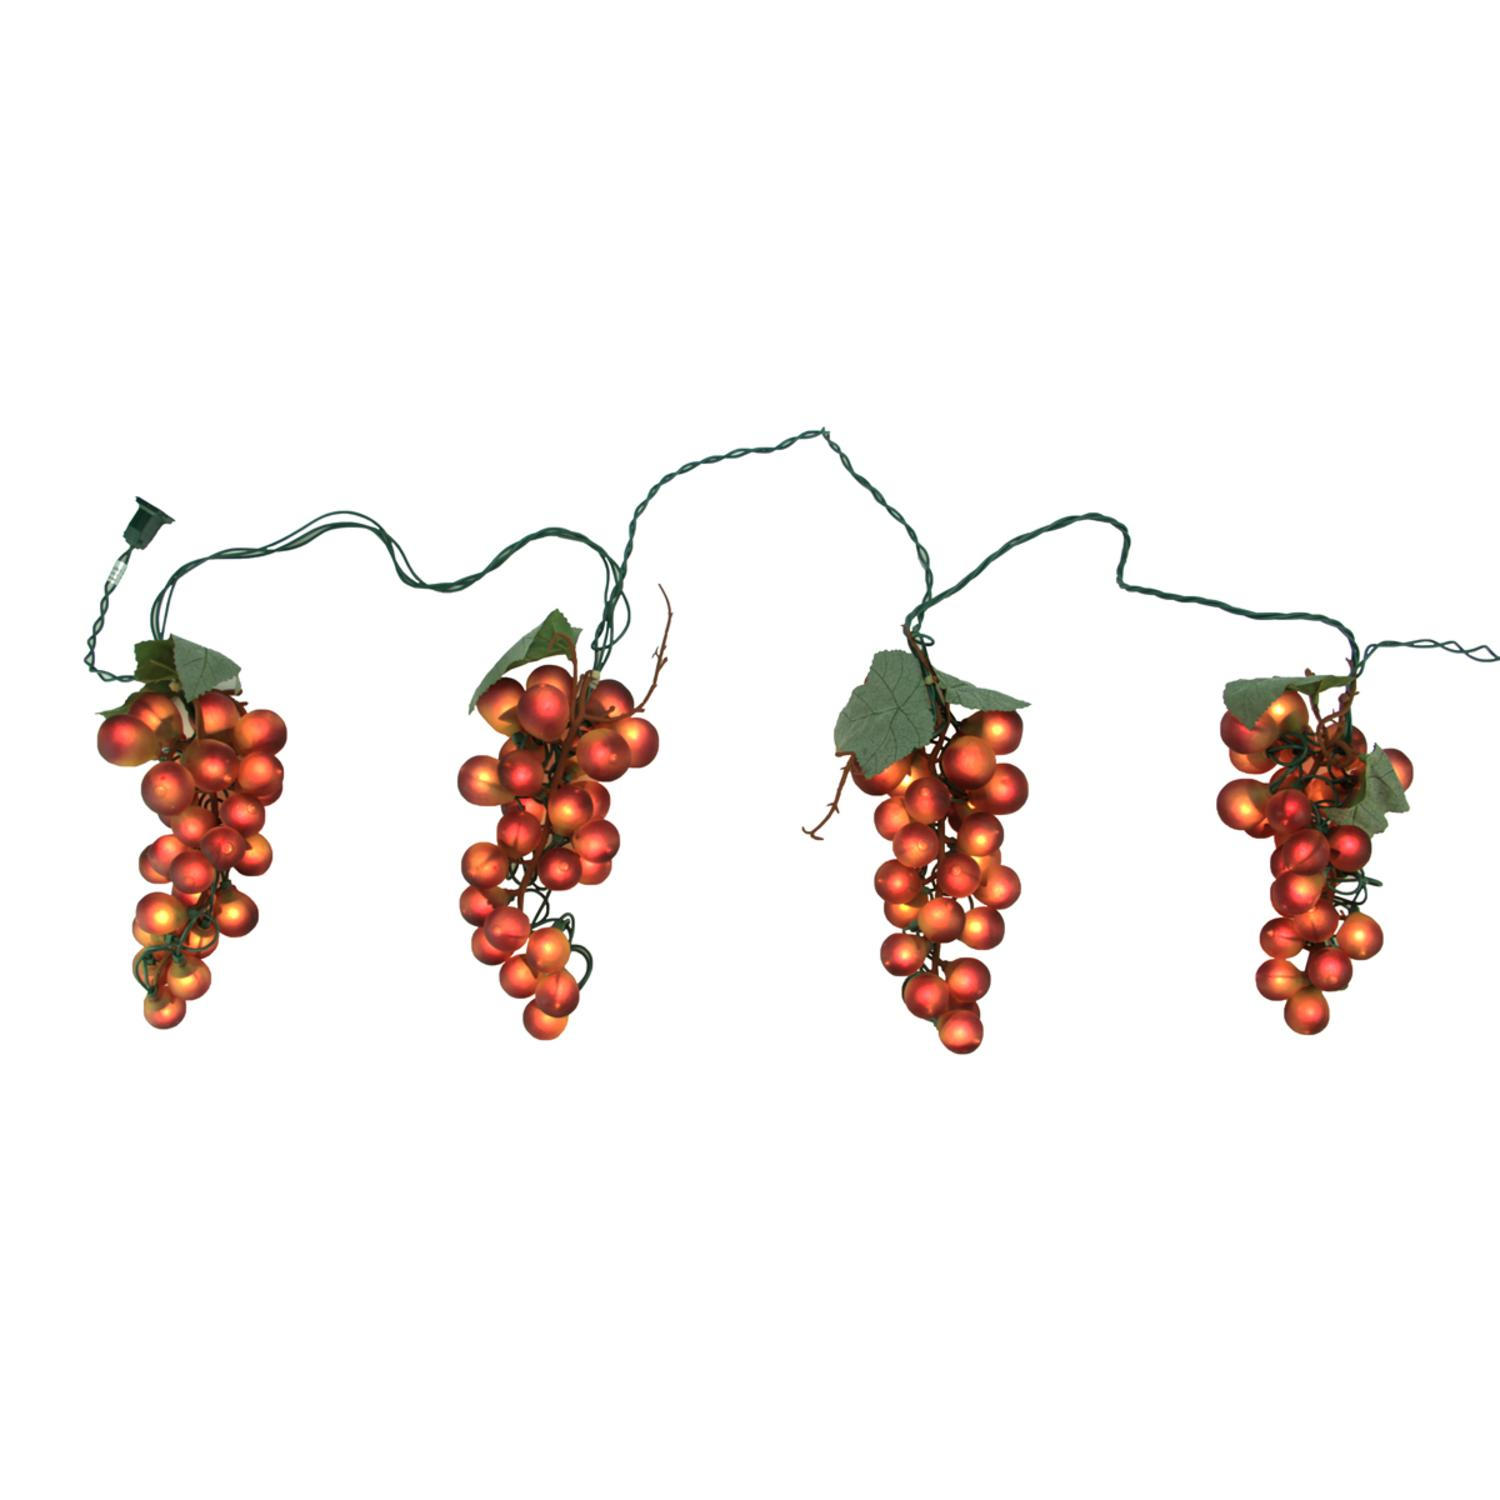 Tuscan Winery Red Grape Summer Garden Patio Christmas Light Set - 5 Clusters 35 Lights